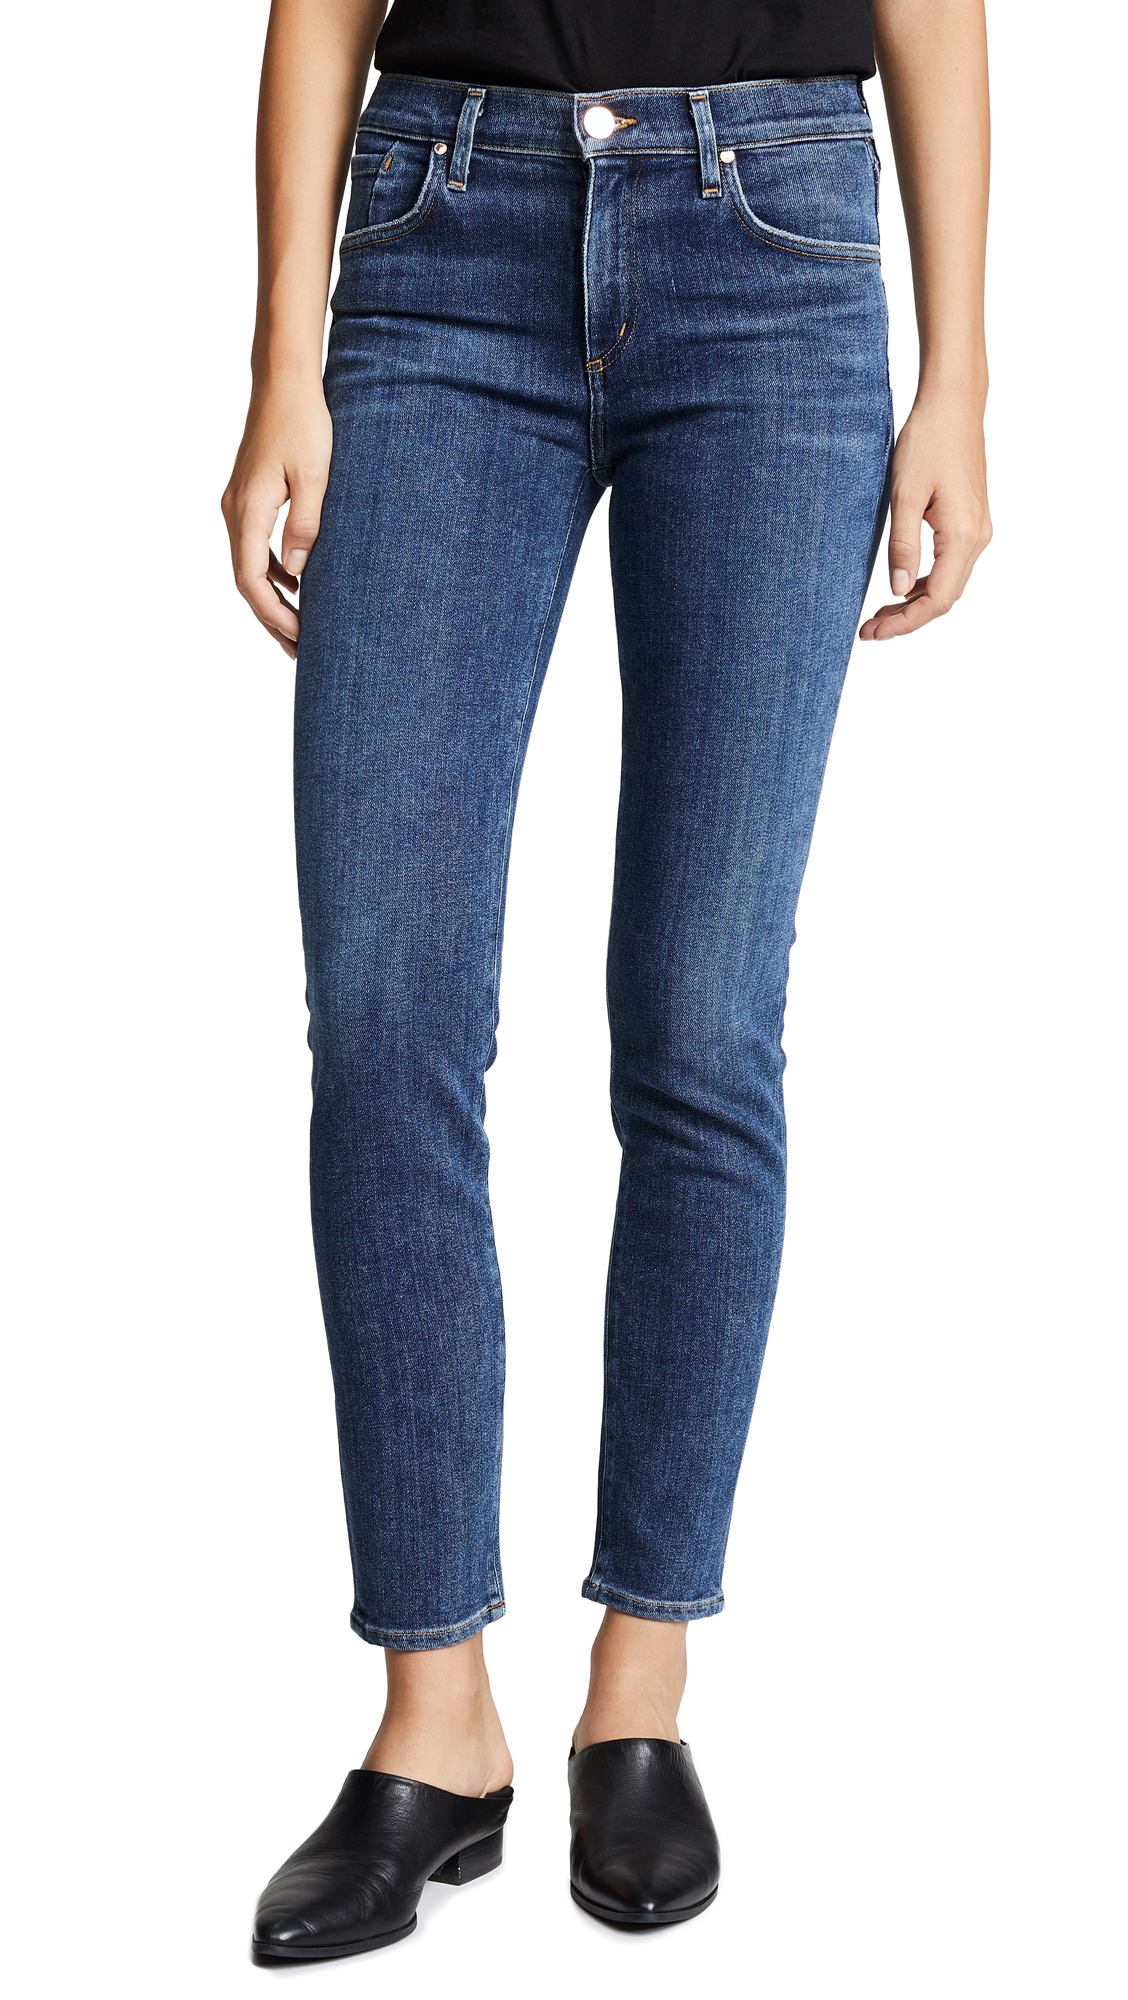 GOLDSIGN The Profit Ankle Skinny Jeans in Pitch